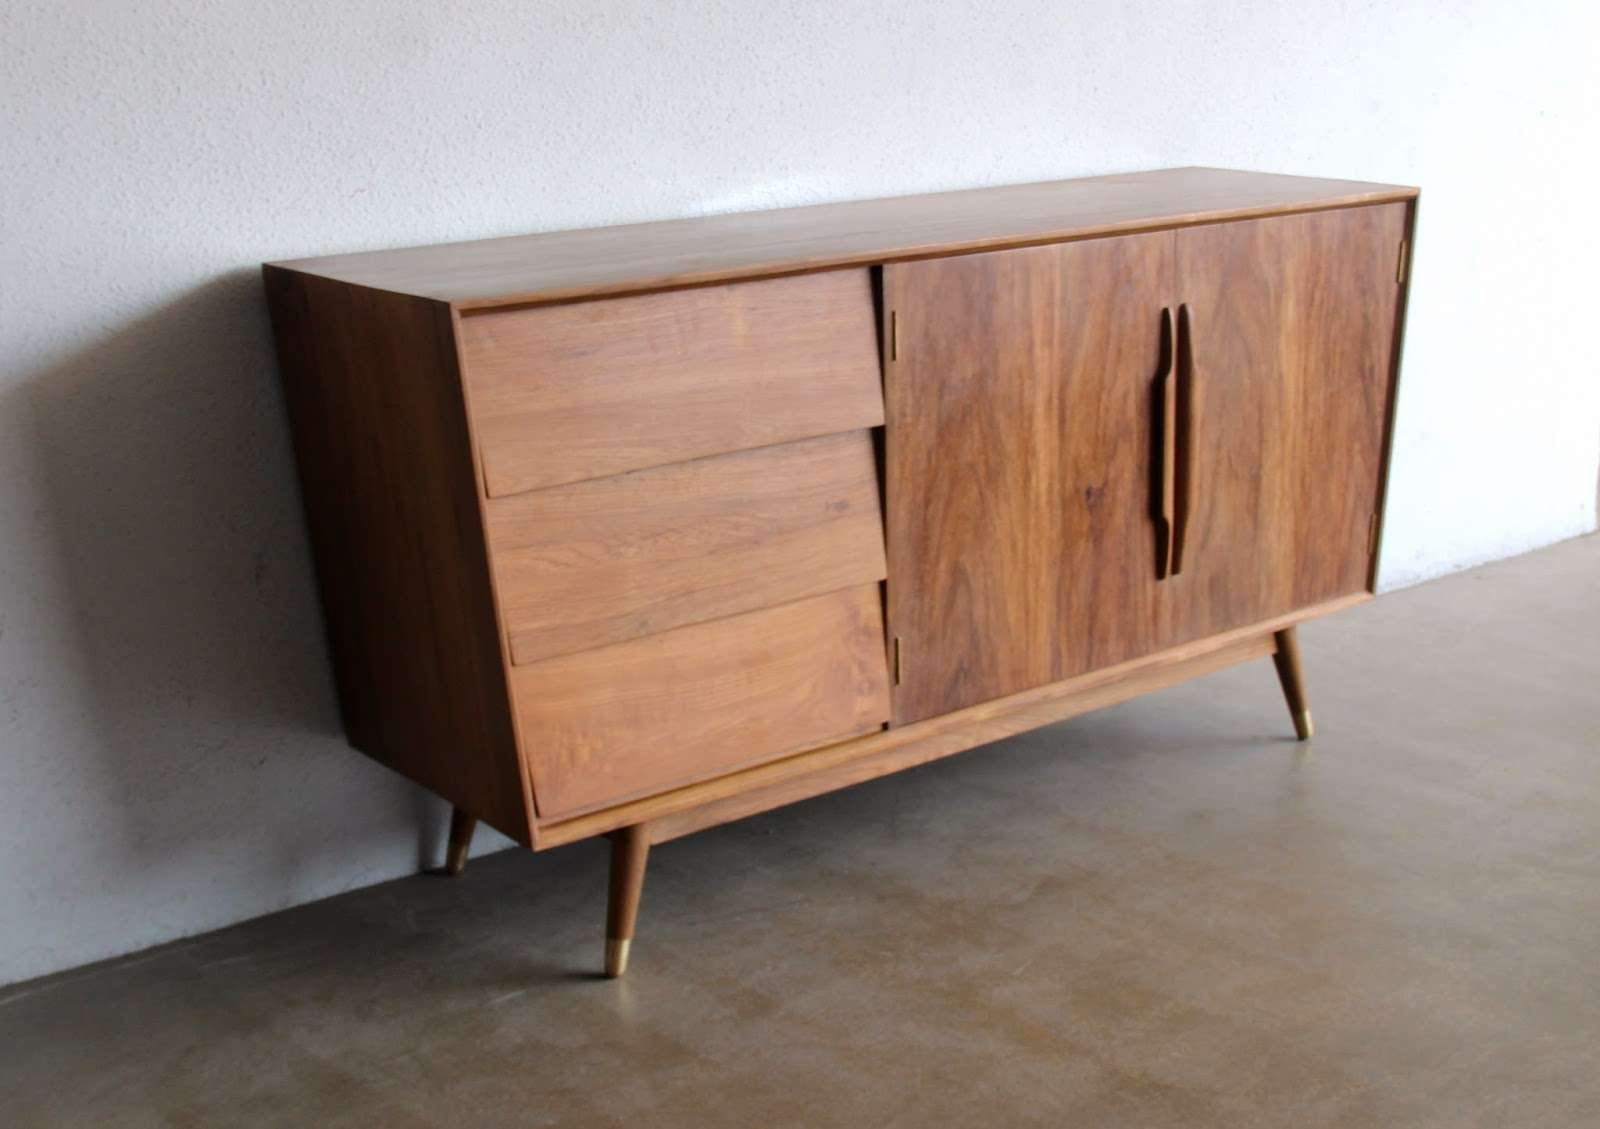 Second Charm Furniture – Mid Century Modern Influence | Bobs Furniture Intended For Midcentury Sideboards (View 5 of 20)